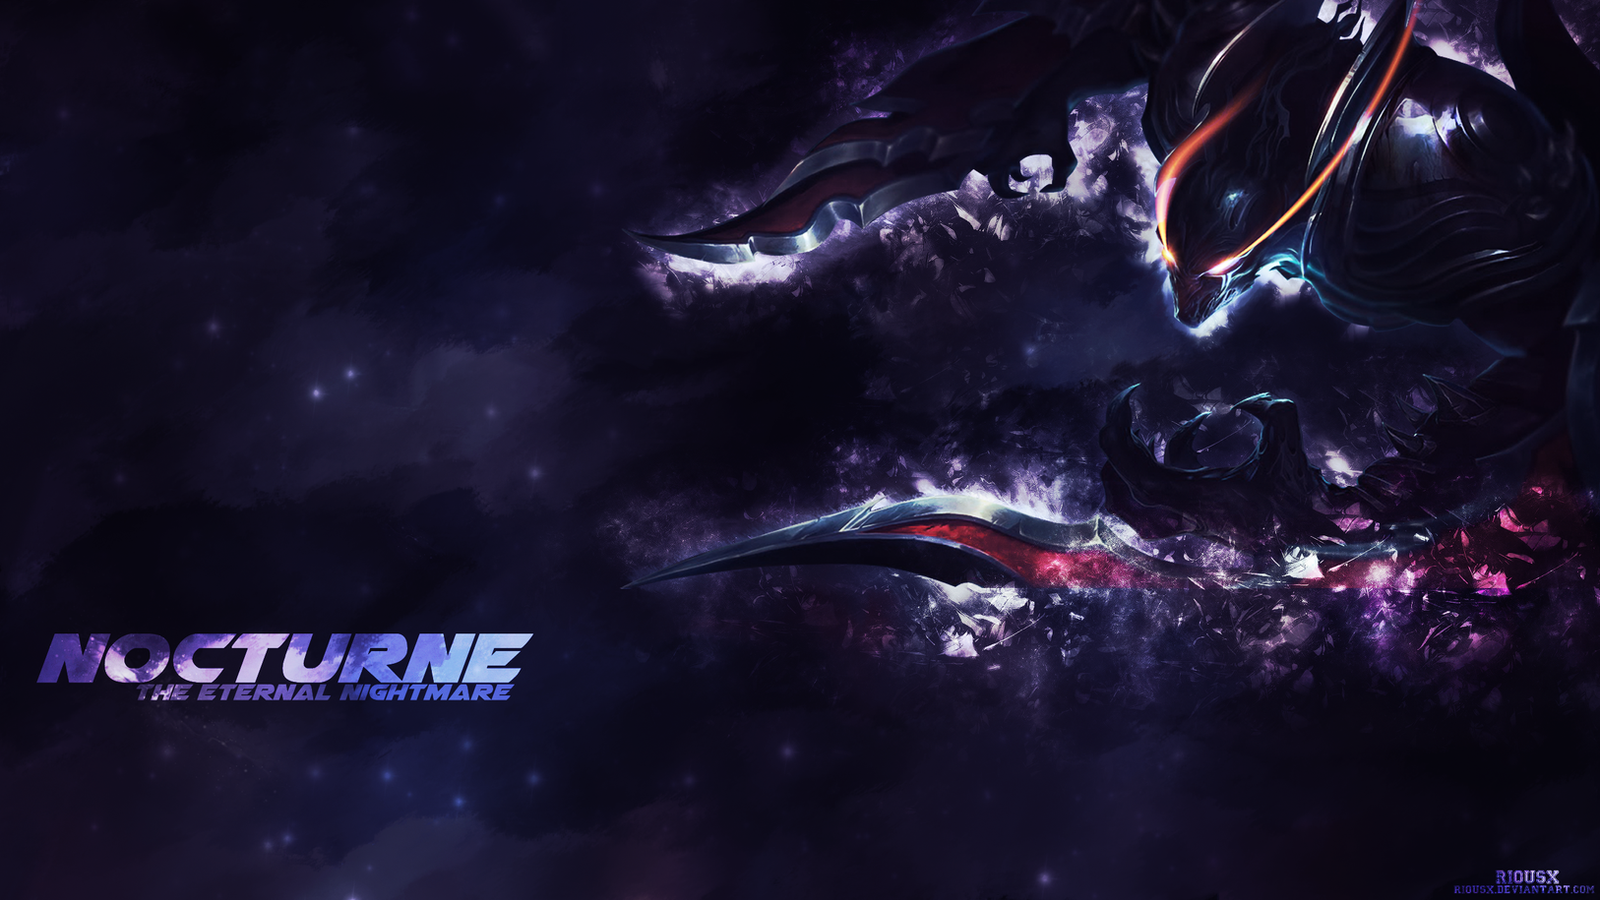 Nocturne Wallpaper by Riousx on DeviantArt